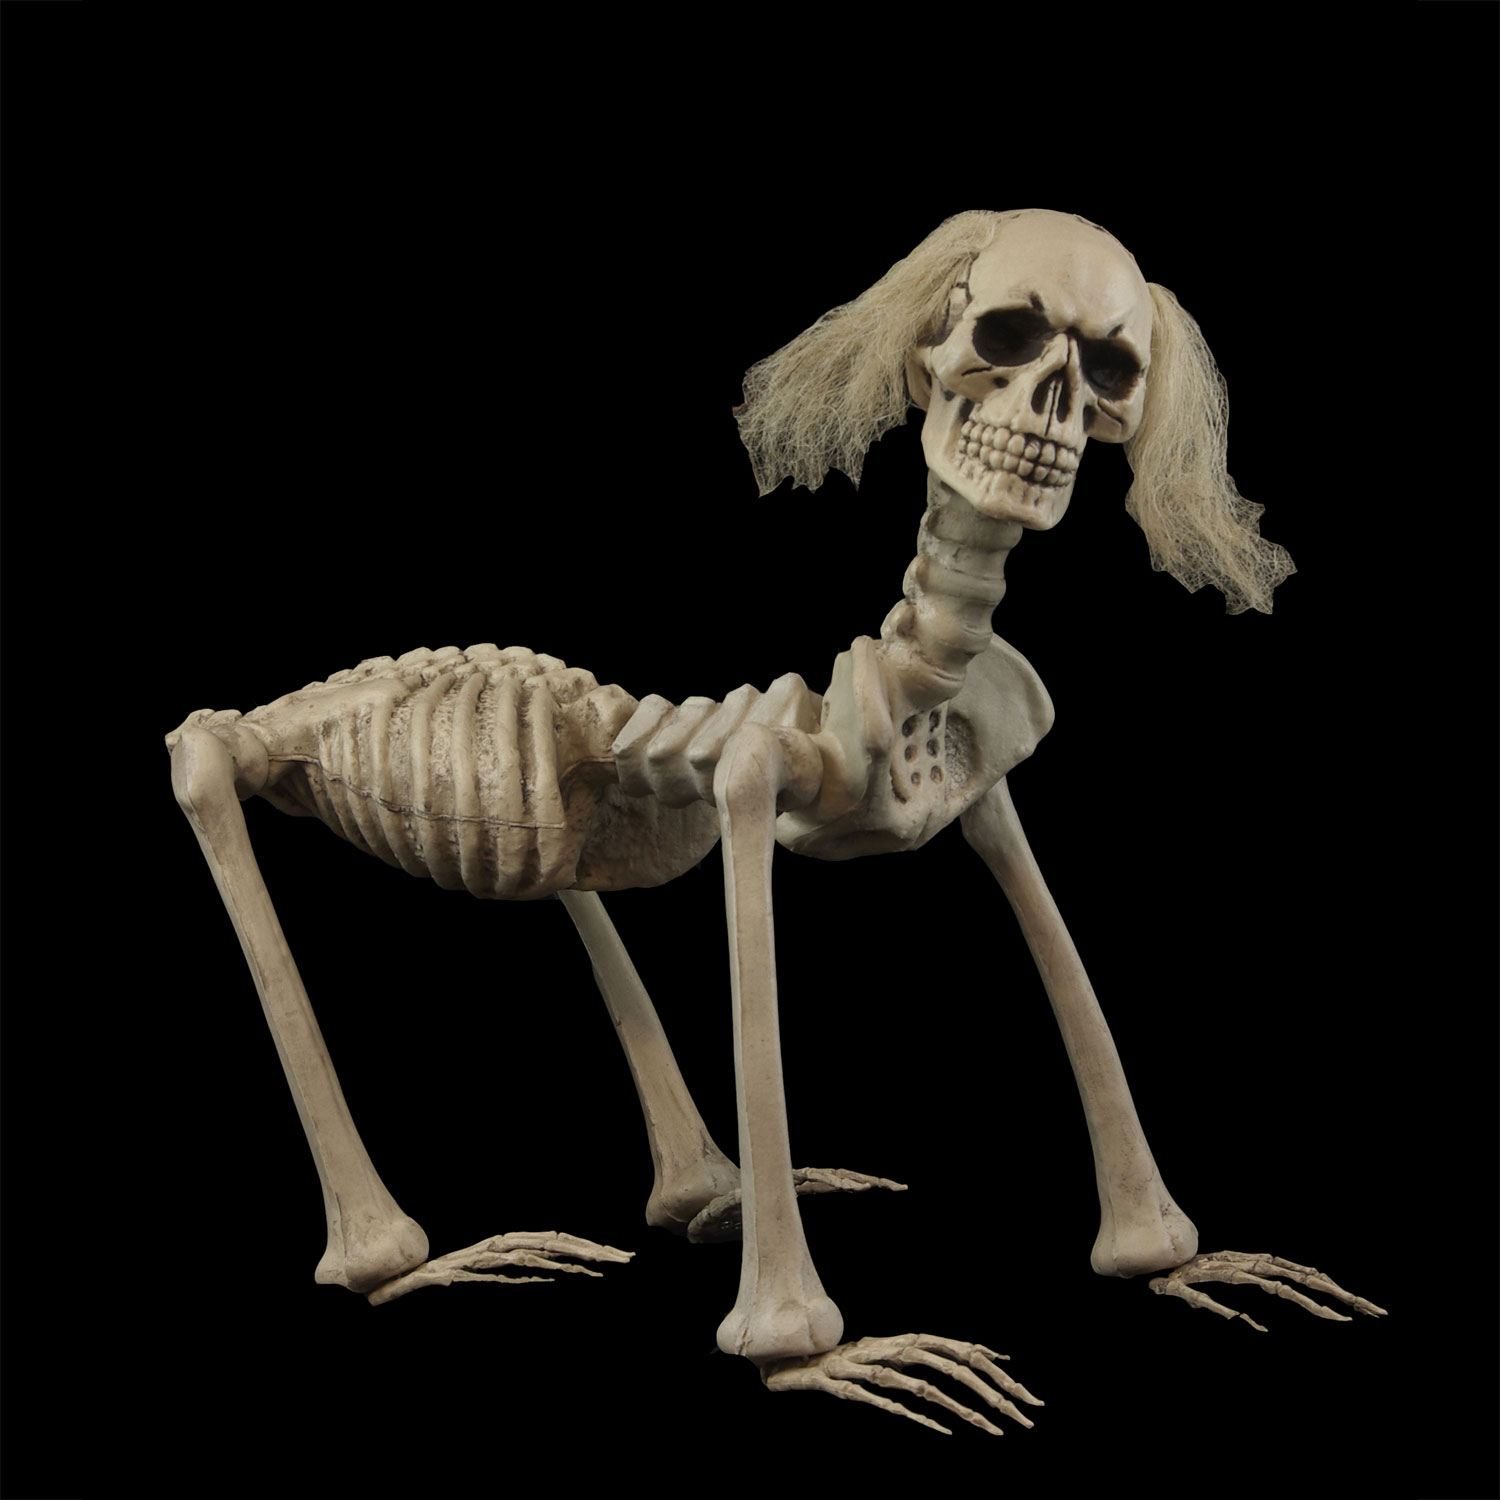 creepy canine bones shadow the mutant dead skeleton dog halloween haunted house horror prop